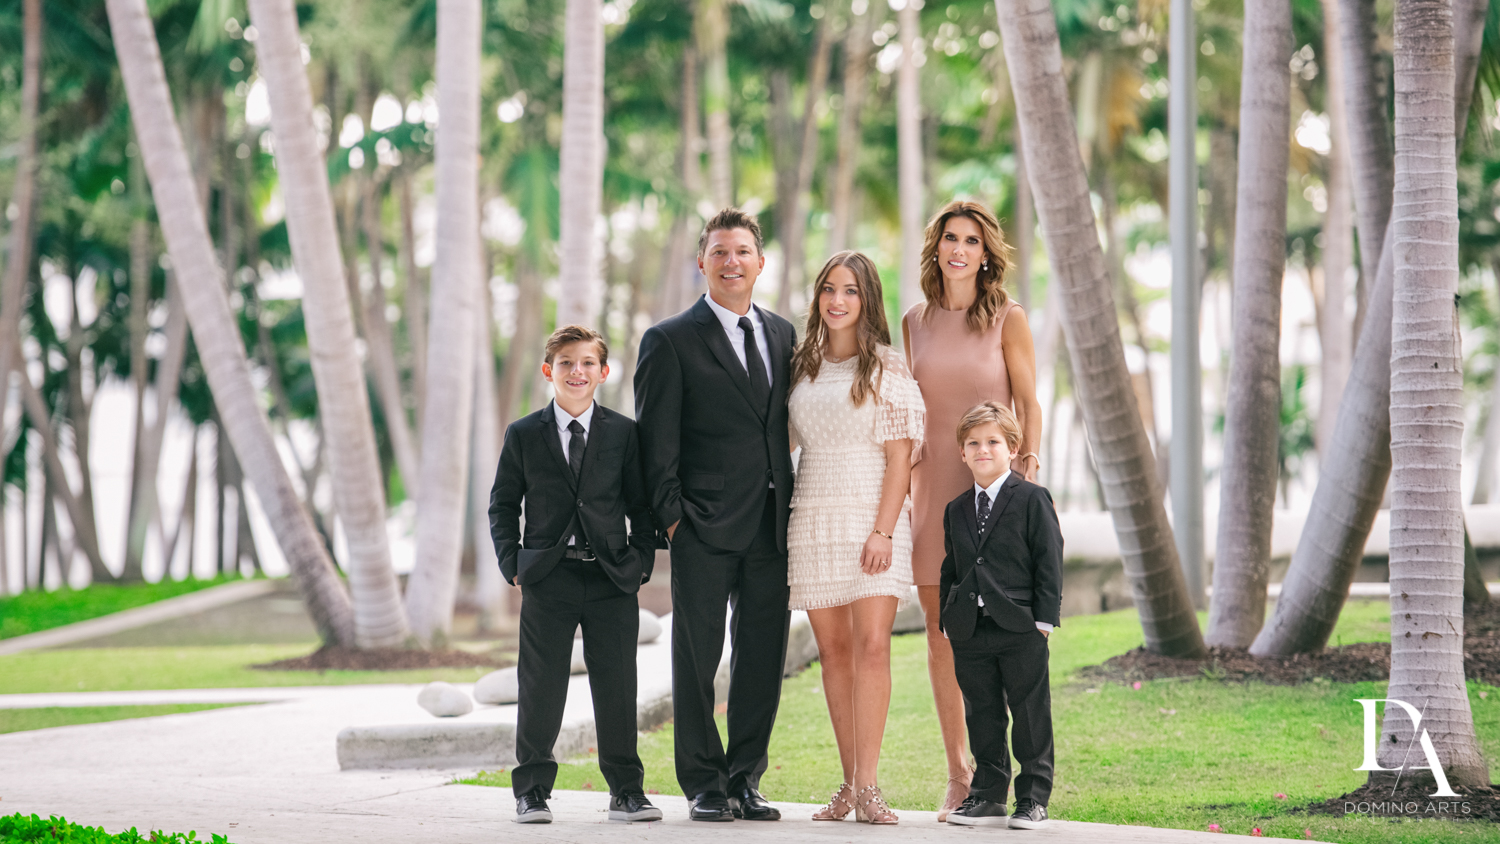 family pictures at Luxurious Broadway Theme Bat Mitzvah at New World Symphony in Miami Beach by Domino Arts Photography